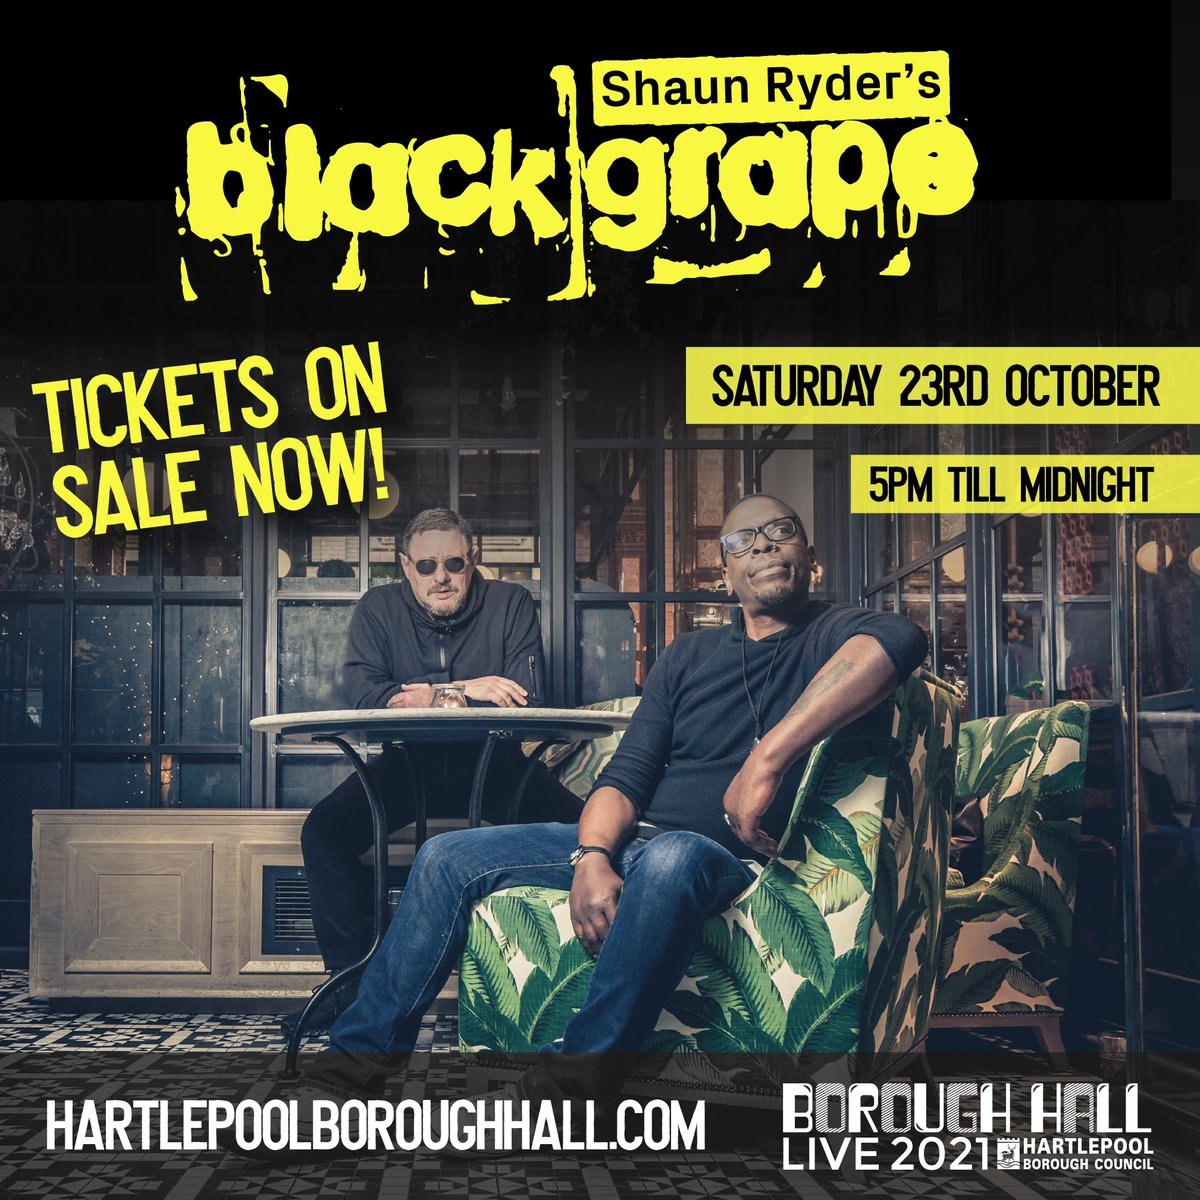 Black Grape announced for Borough Hall Live 2021! Live music is baaack 🙌 Black Grape will take their well-earned spot as headline act at Borough Hall Live this October 🎸 Tickets on sale now: culturehartlepool.com/.../boroughhal… #BlackGrape #BoroughHallLive2021 #Hartlepool #Livemusic